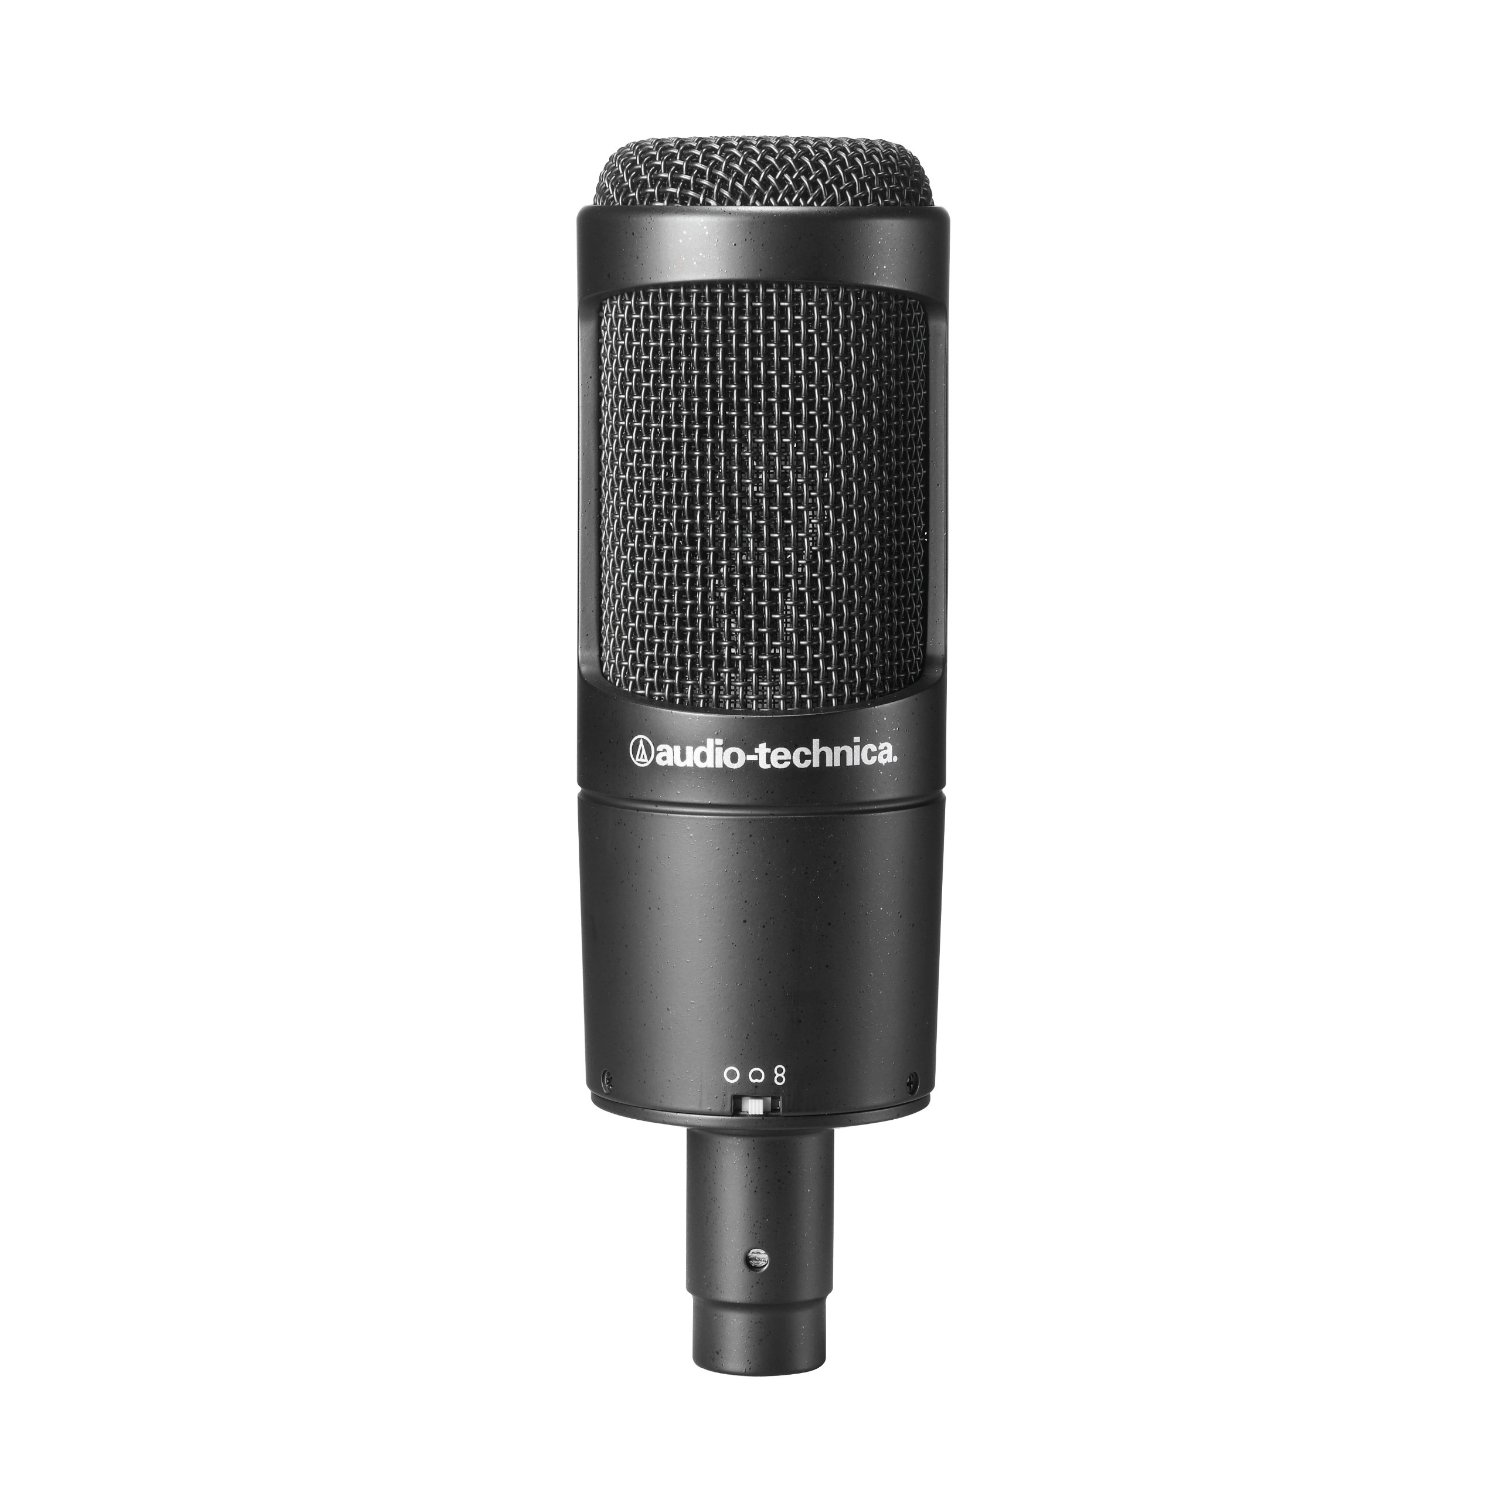 Audio-Technica AT2050 Multi-Pattern Condenser Microphone With Three Switchable Polar Patterns